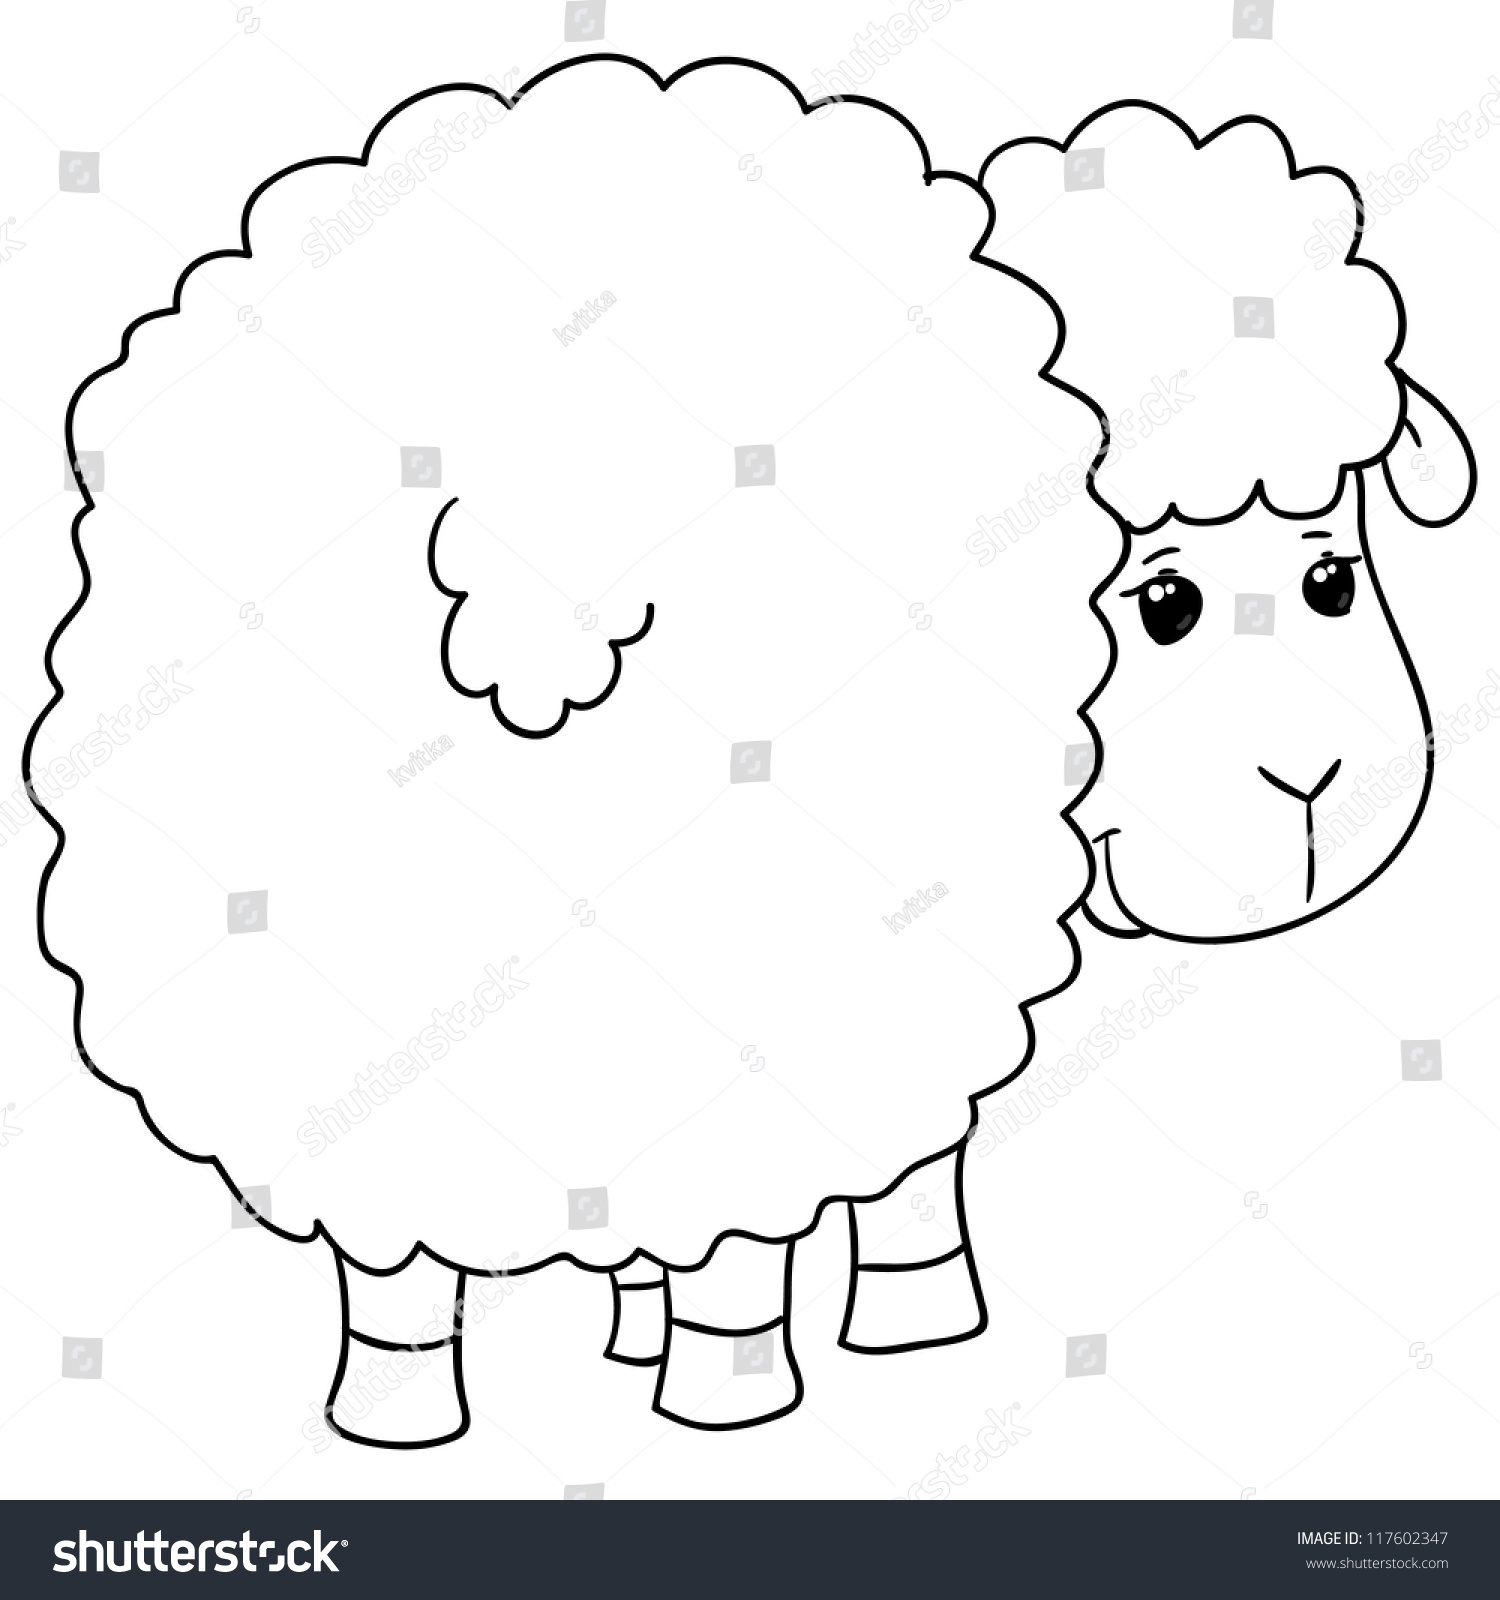 sheep coloring stock vector illustration 117602347 shutterstock